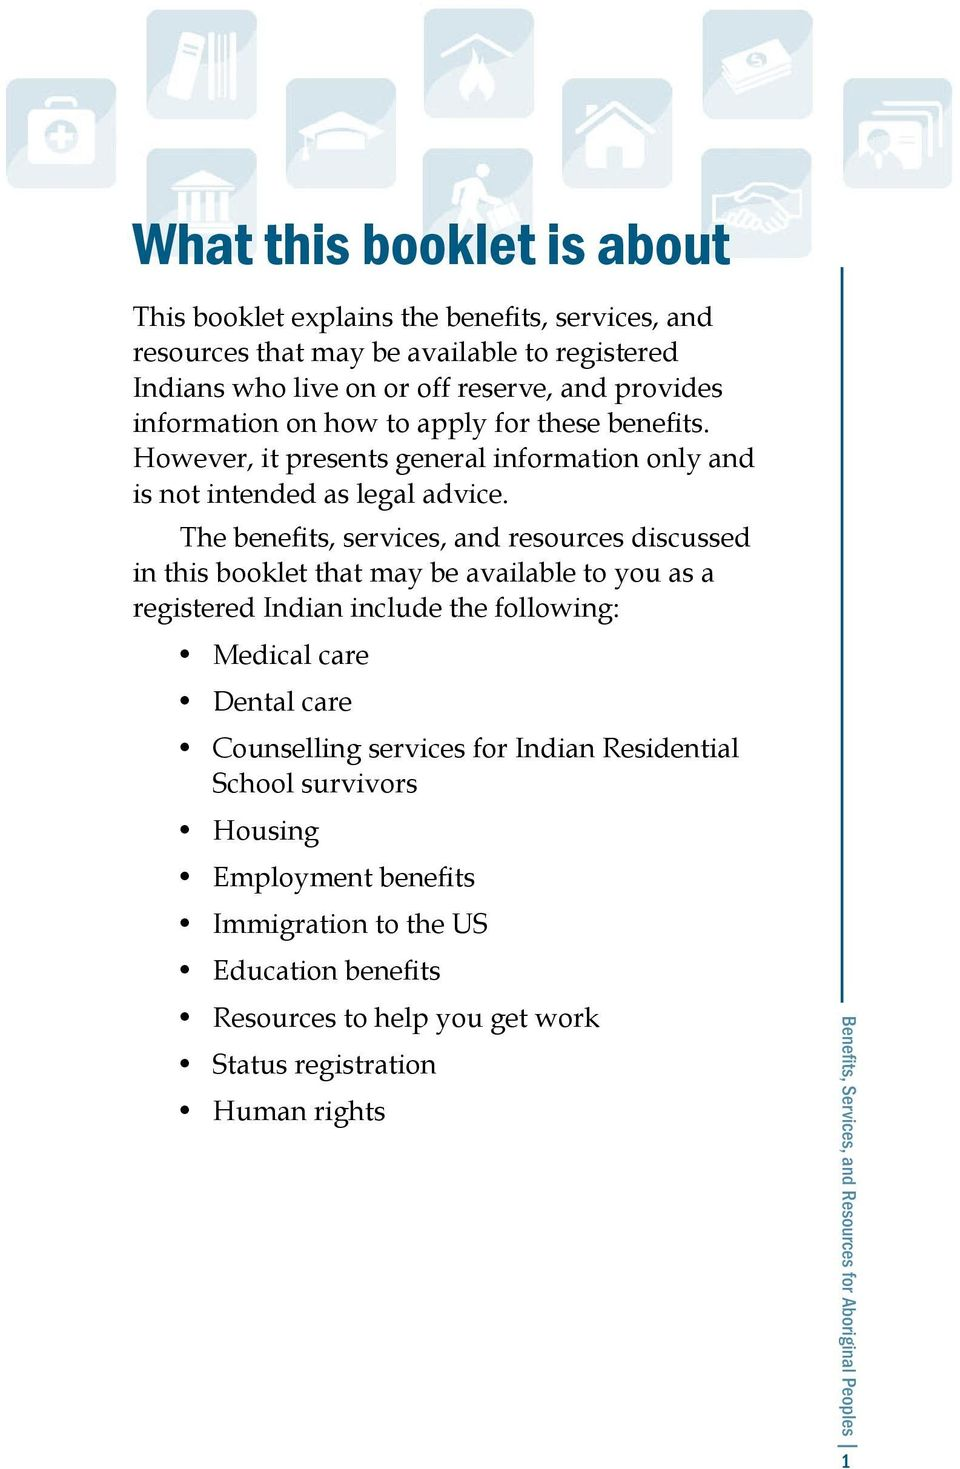 The benefits, services, and resources discussed in this booklet that may be available to you as a registered Indian include the following: Medical care Dental care